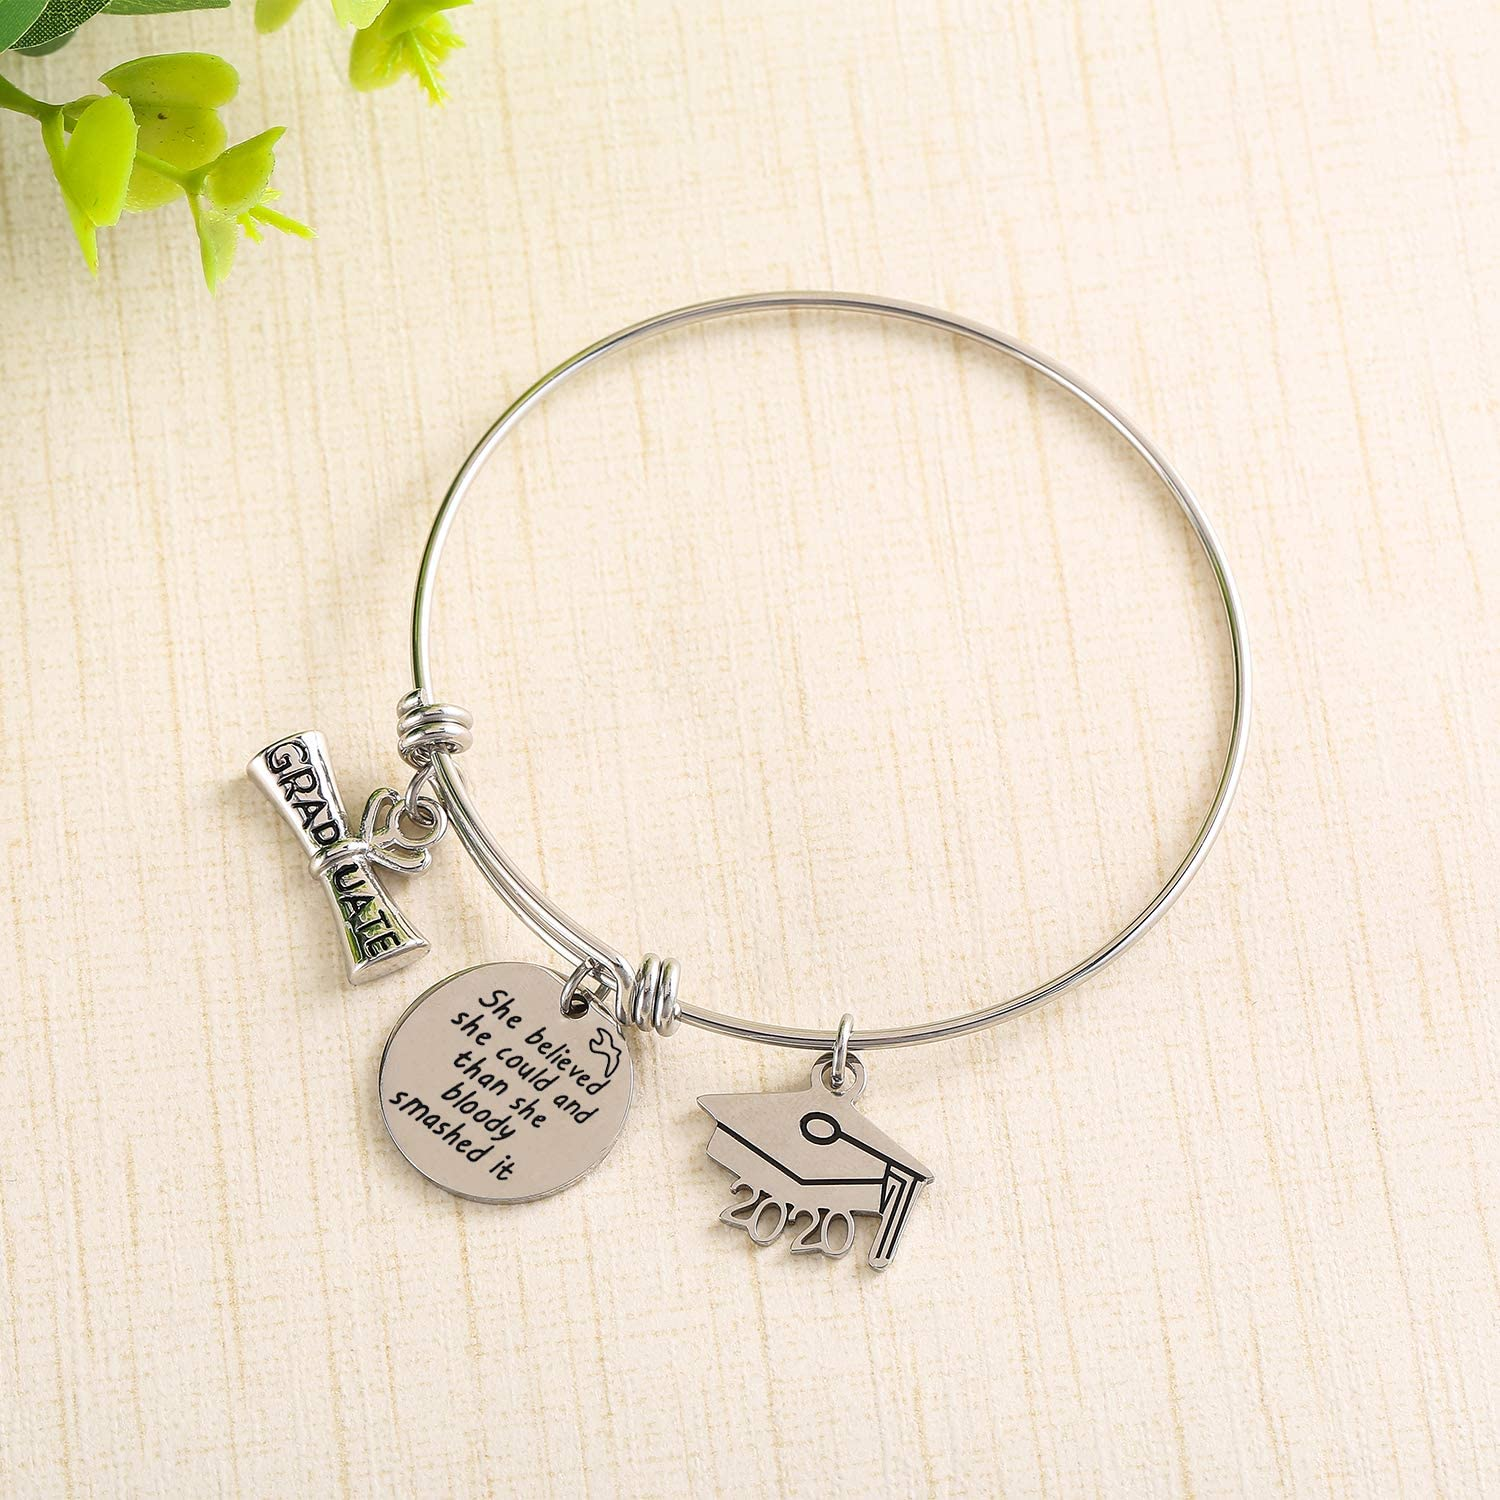 Graduation Cap 2020 Bangle Gifts Expandable Bangle Adjustable Bracelet Graduation Inspirationla Gift - onlyone